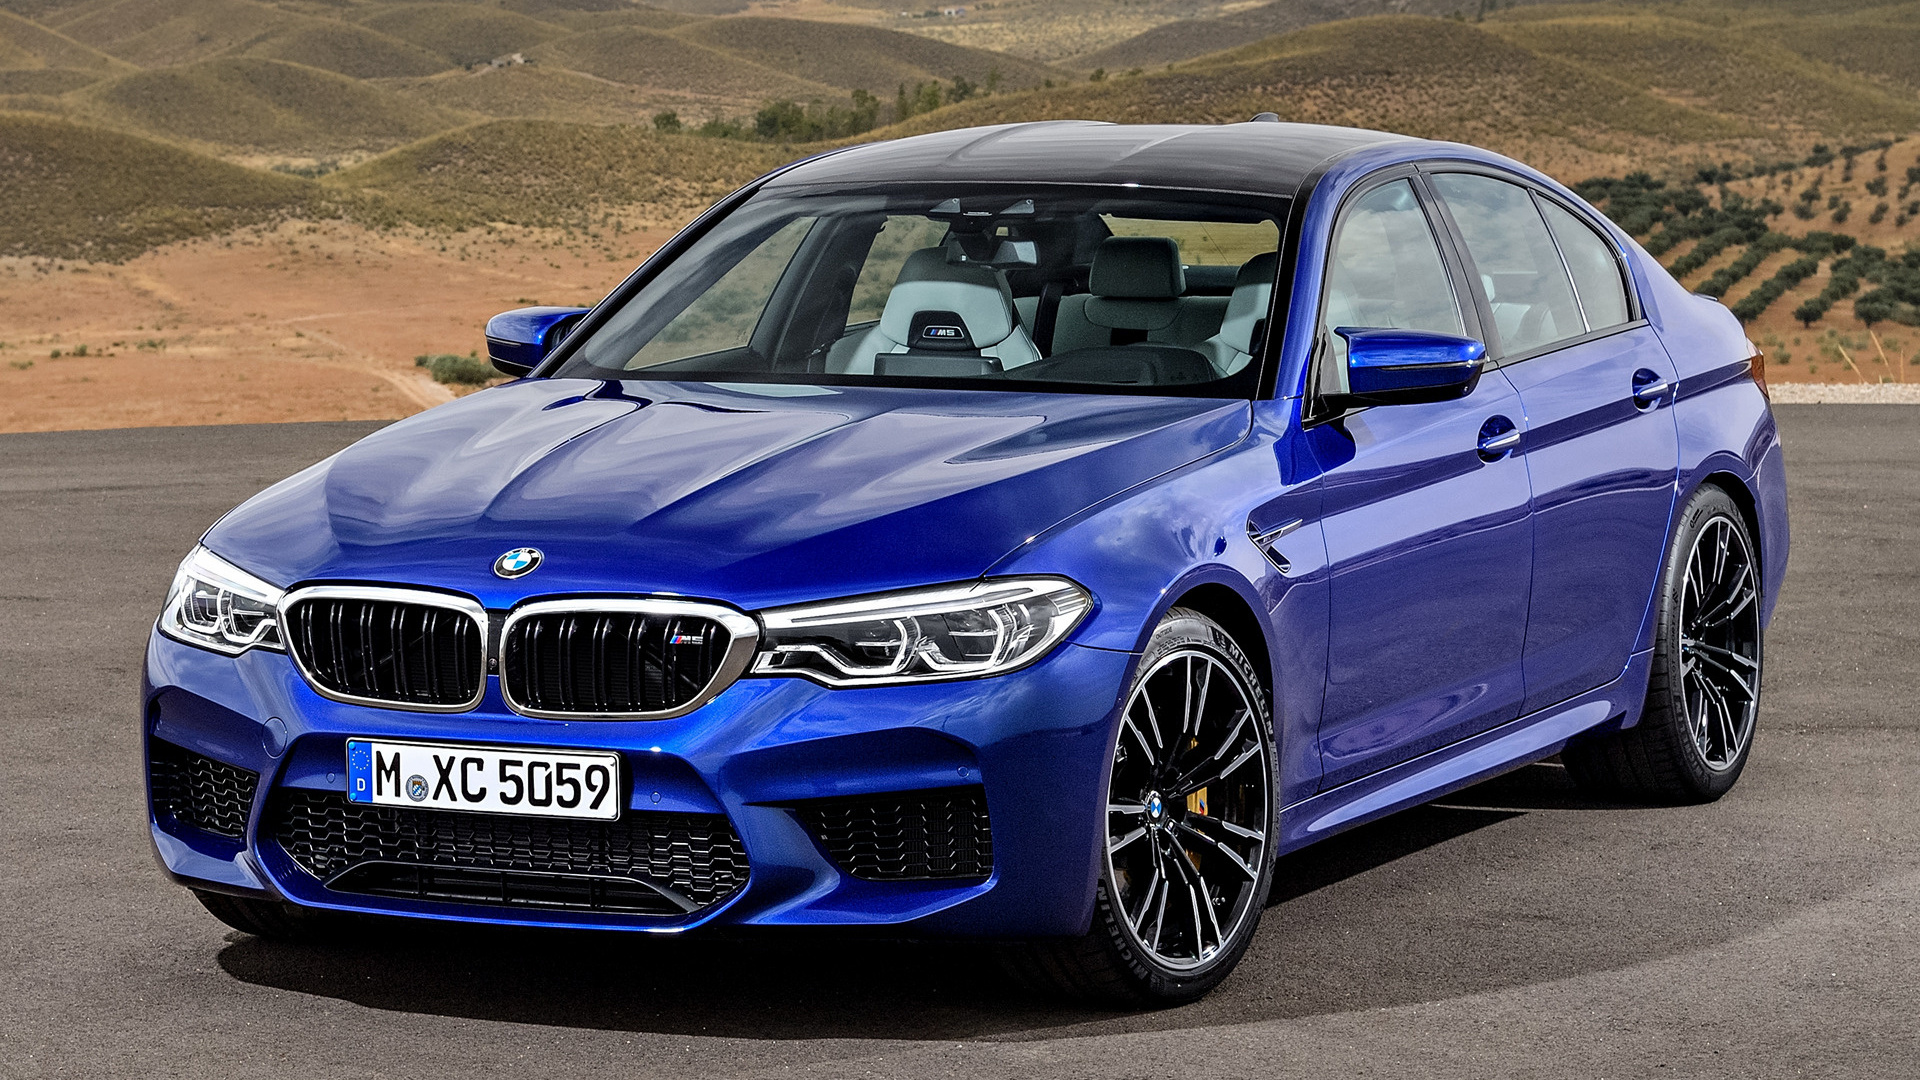 2018 Bmw M5 Wallpapers And Hd Images Car Pixel Wallpaper ...